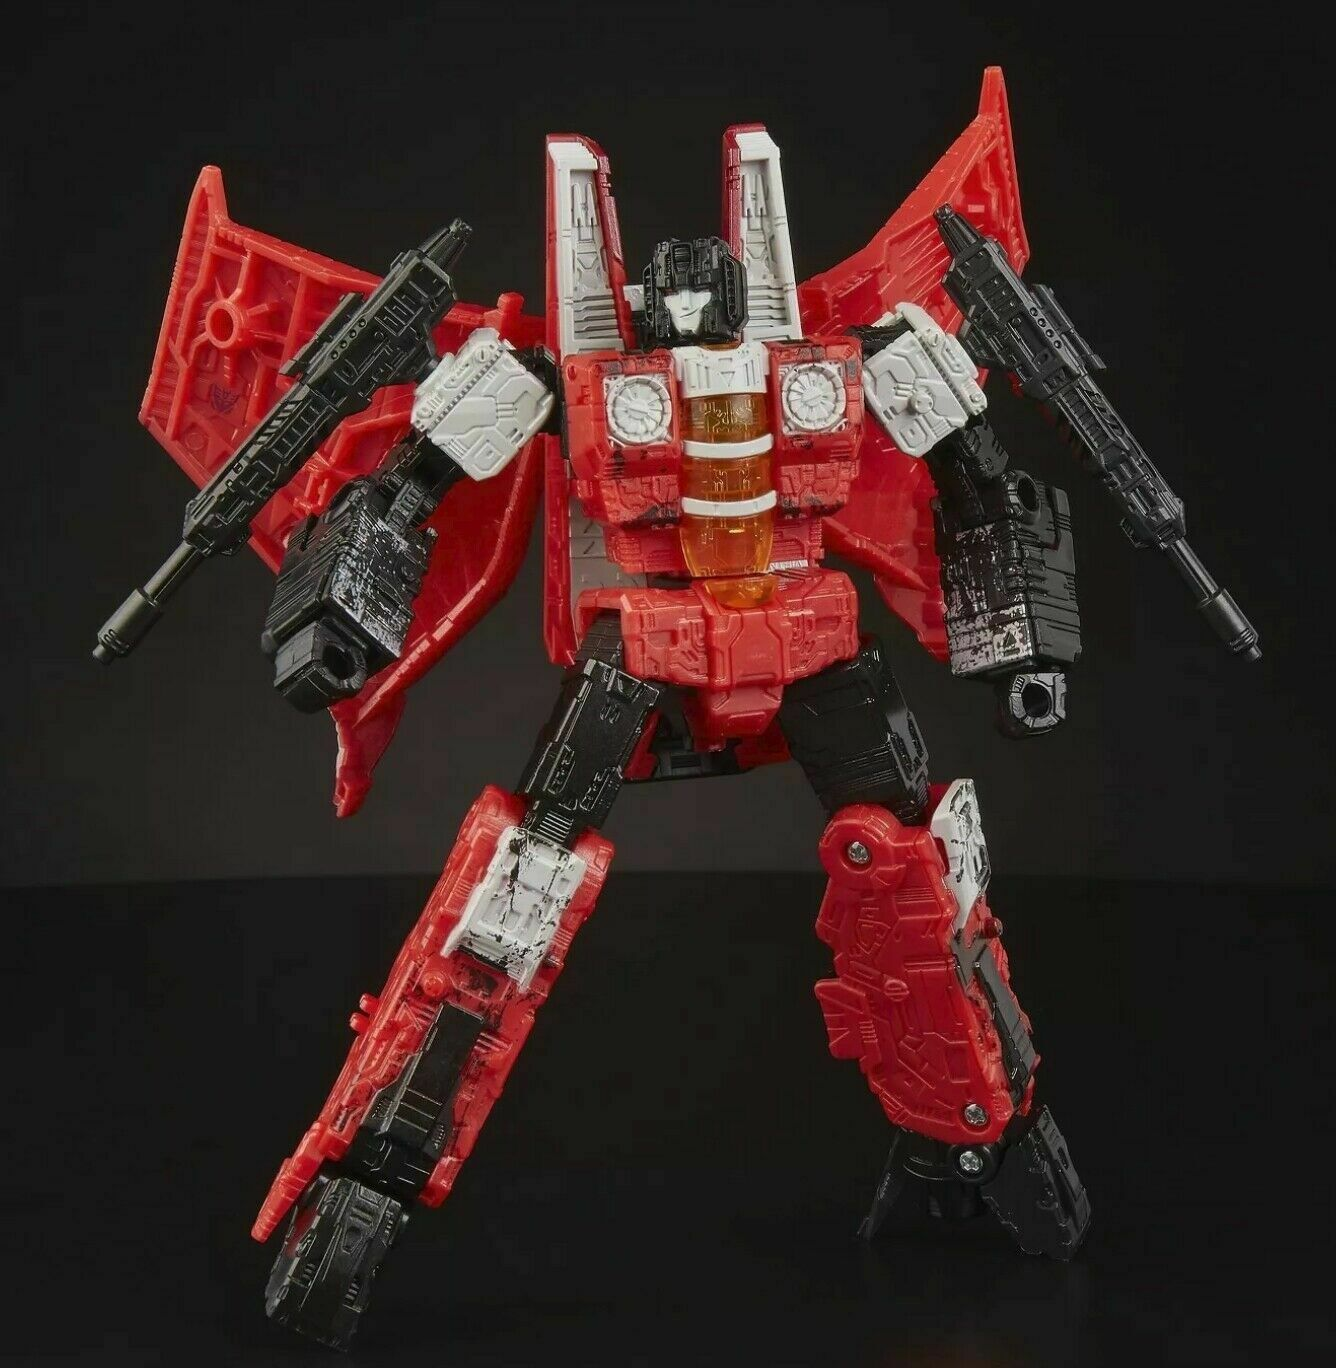 Transformers Siege WFC SELECTS Target Exclusve RED WING redwing NEW